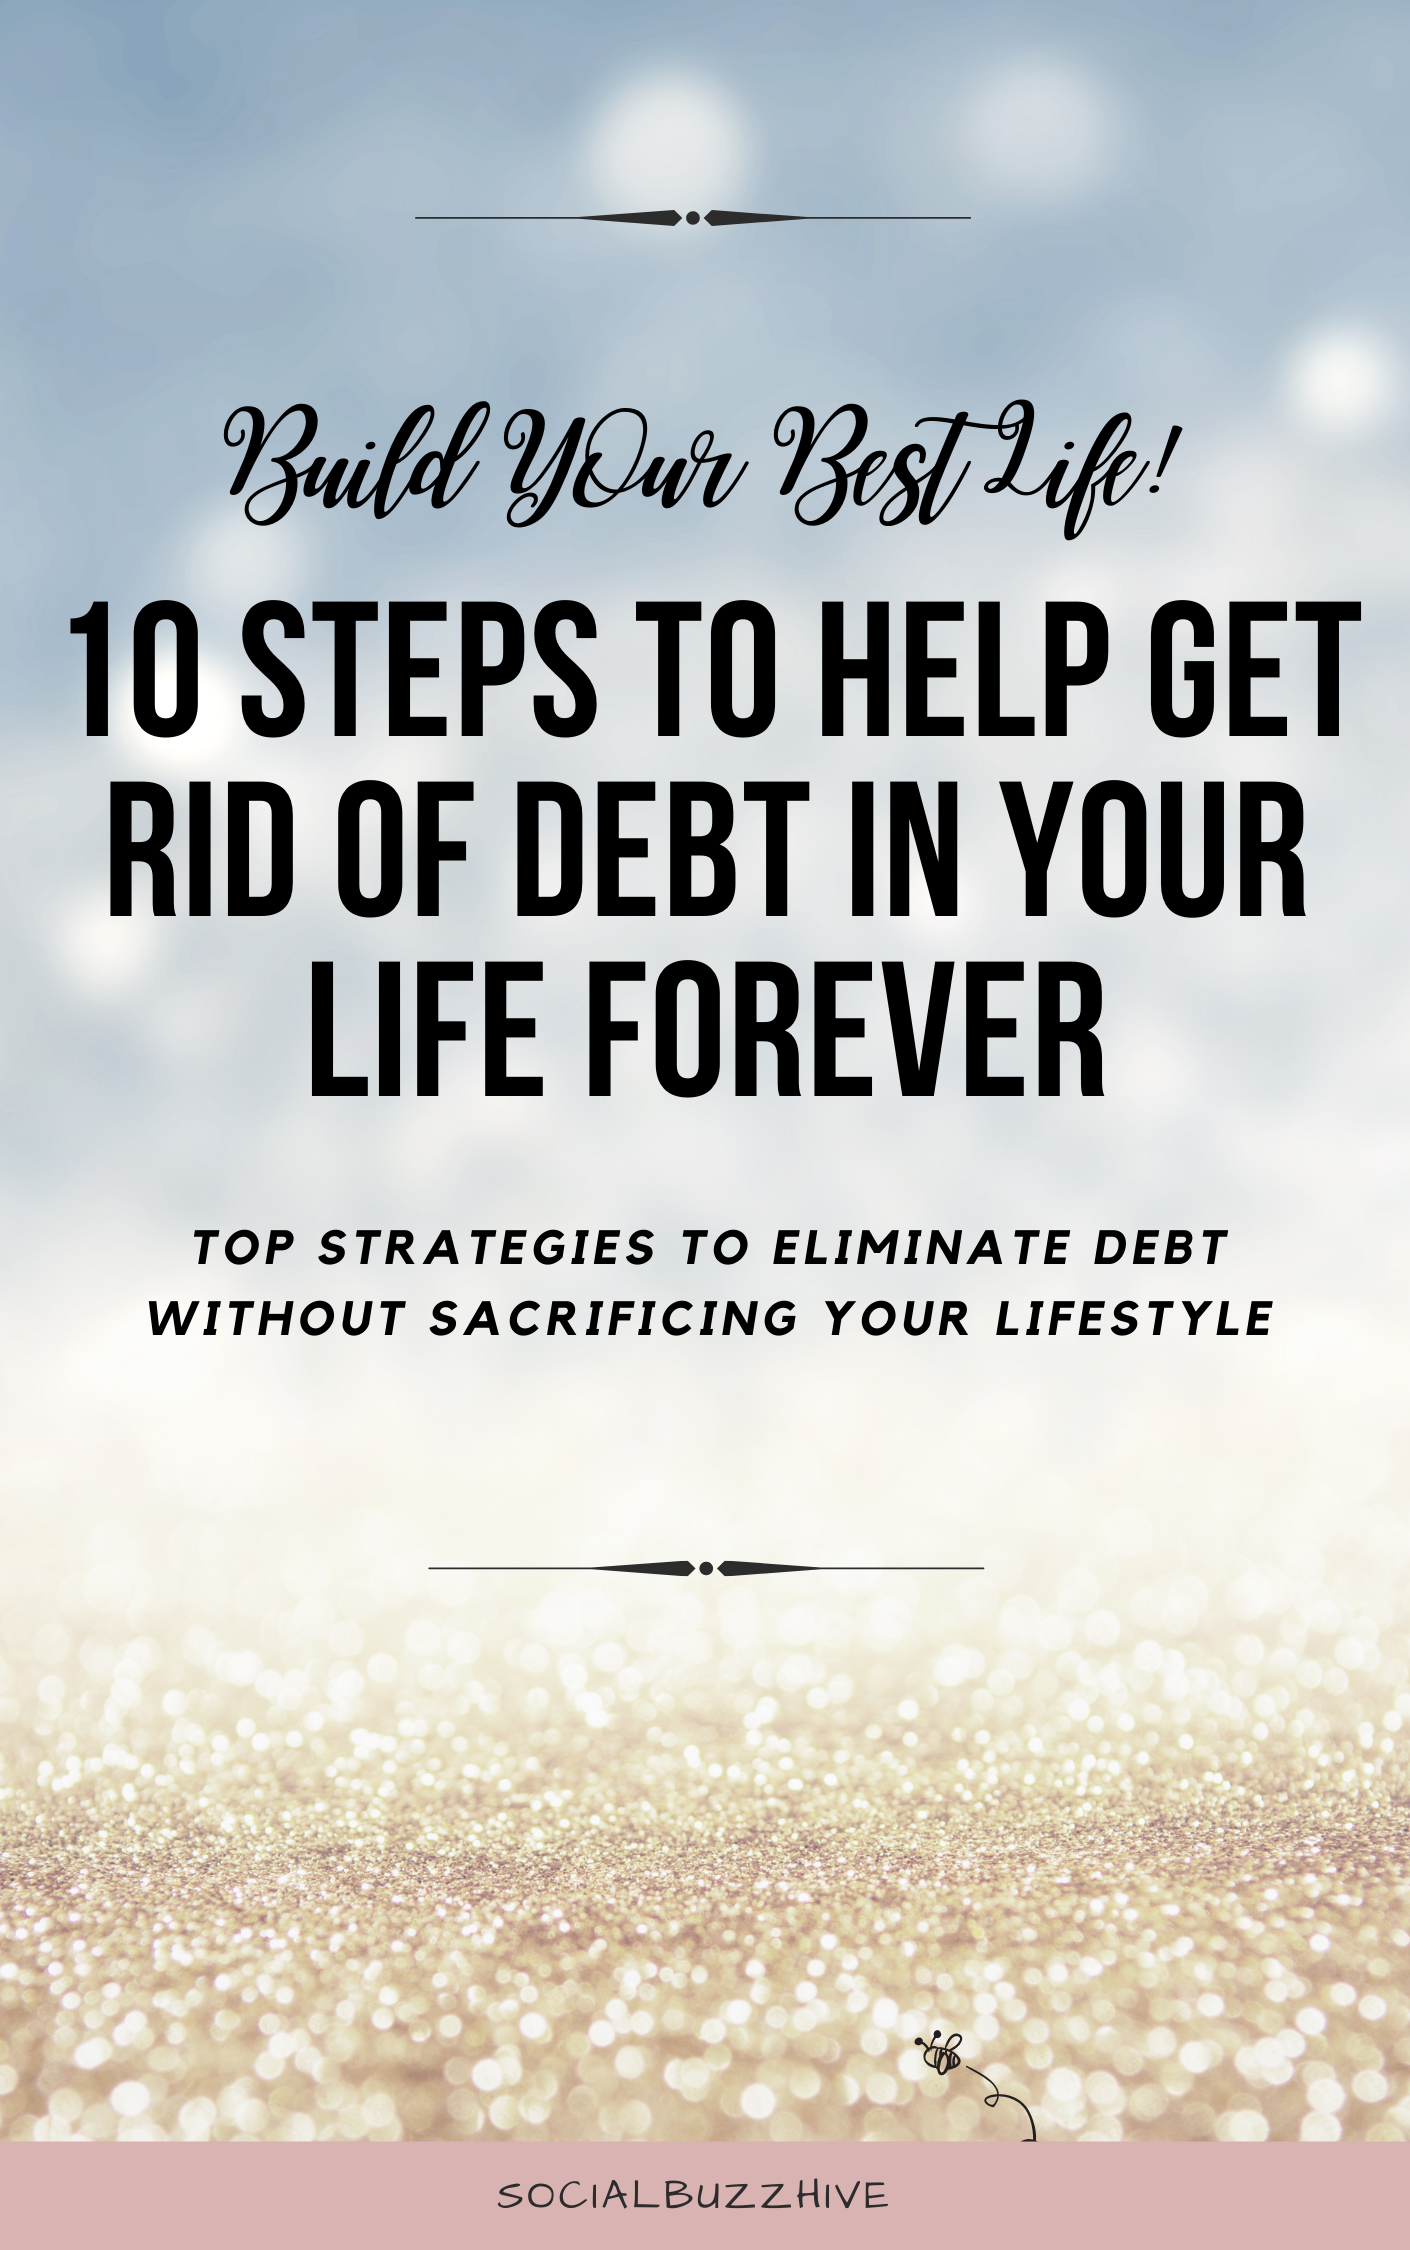 10 steps to get rid of debt forever